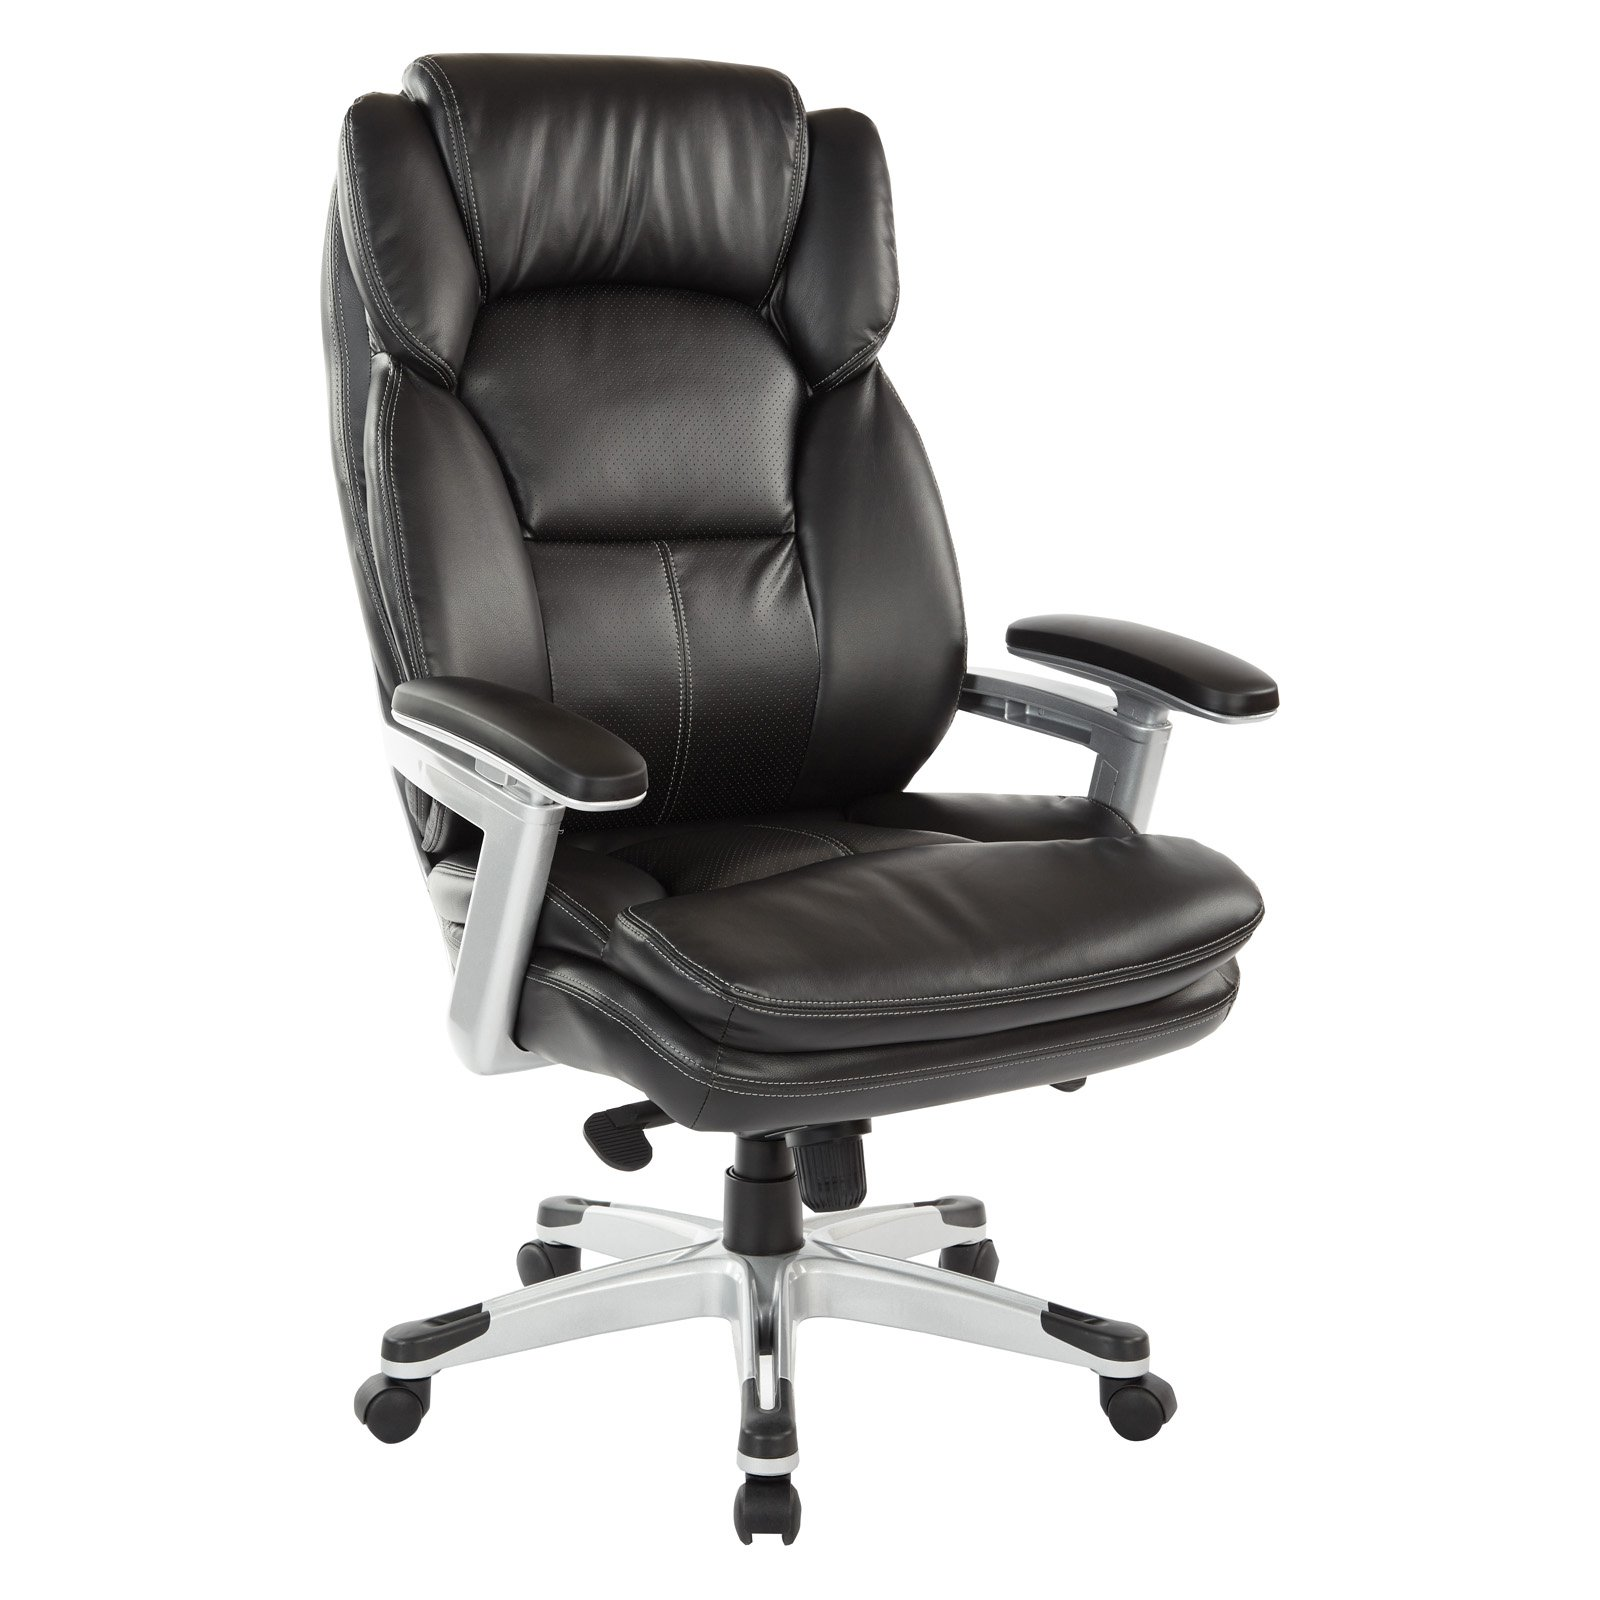 Office Star Executive Bonded Leather Chair with Faux Leather Padded Arms and Coated Base, Multiple Colors